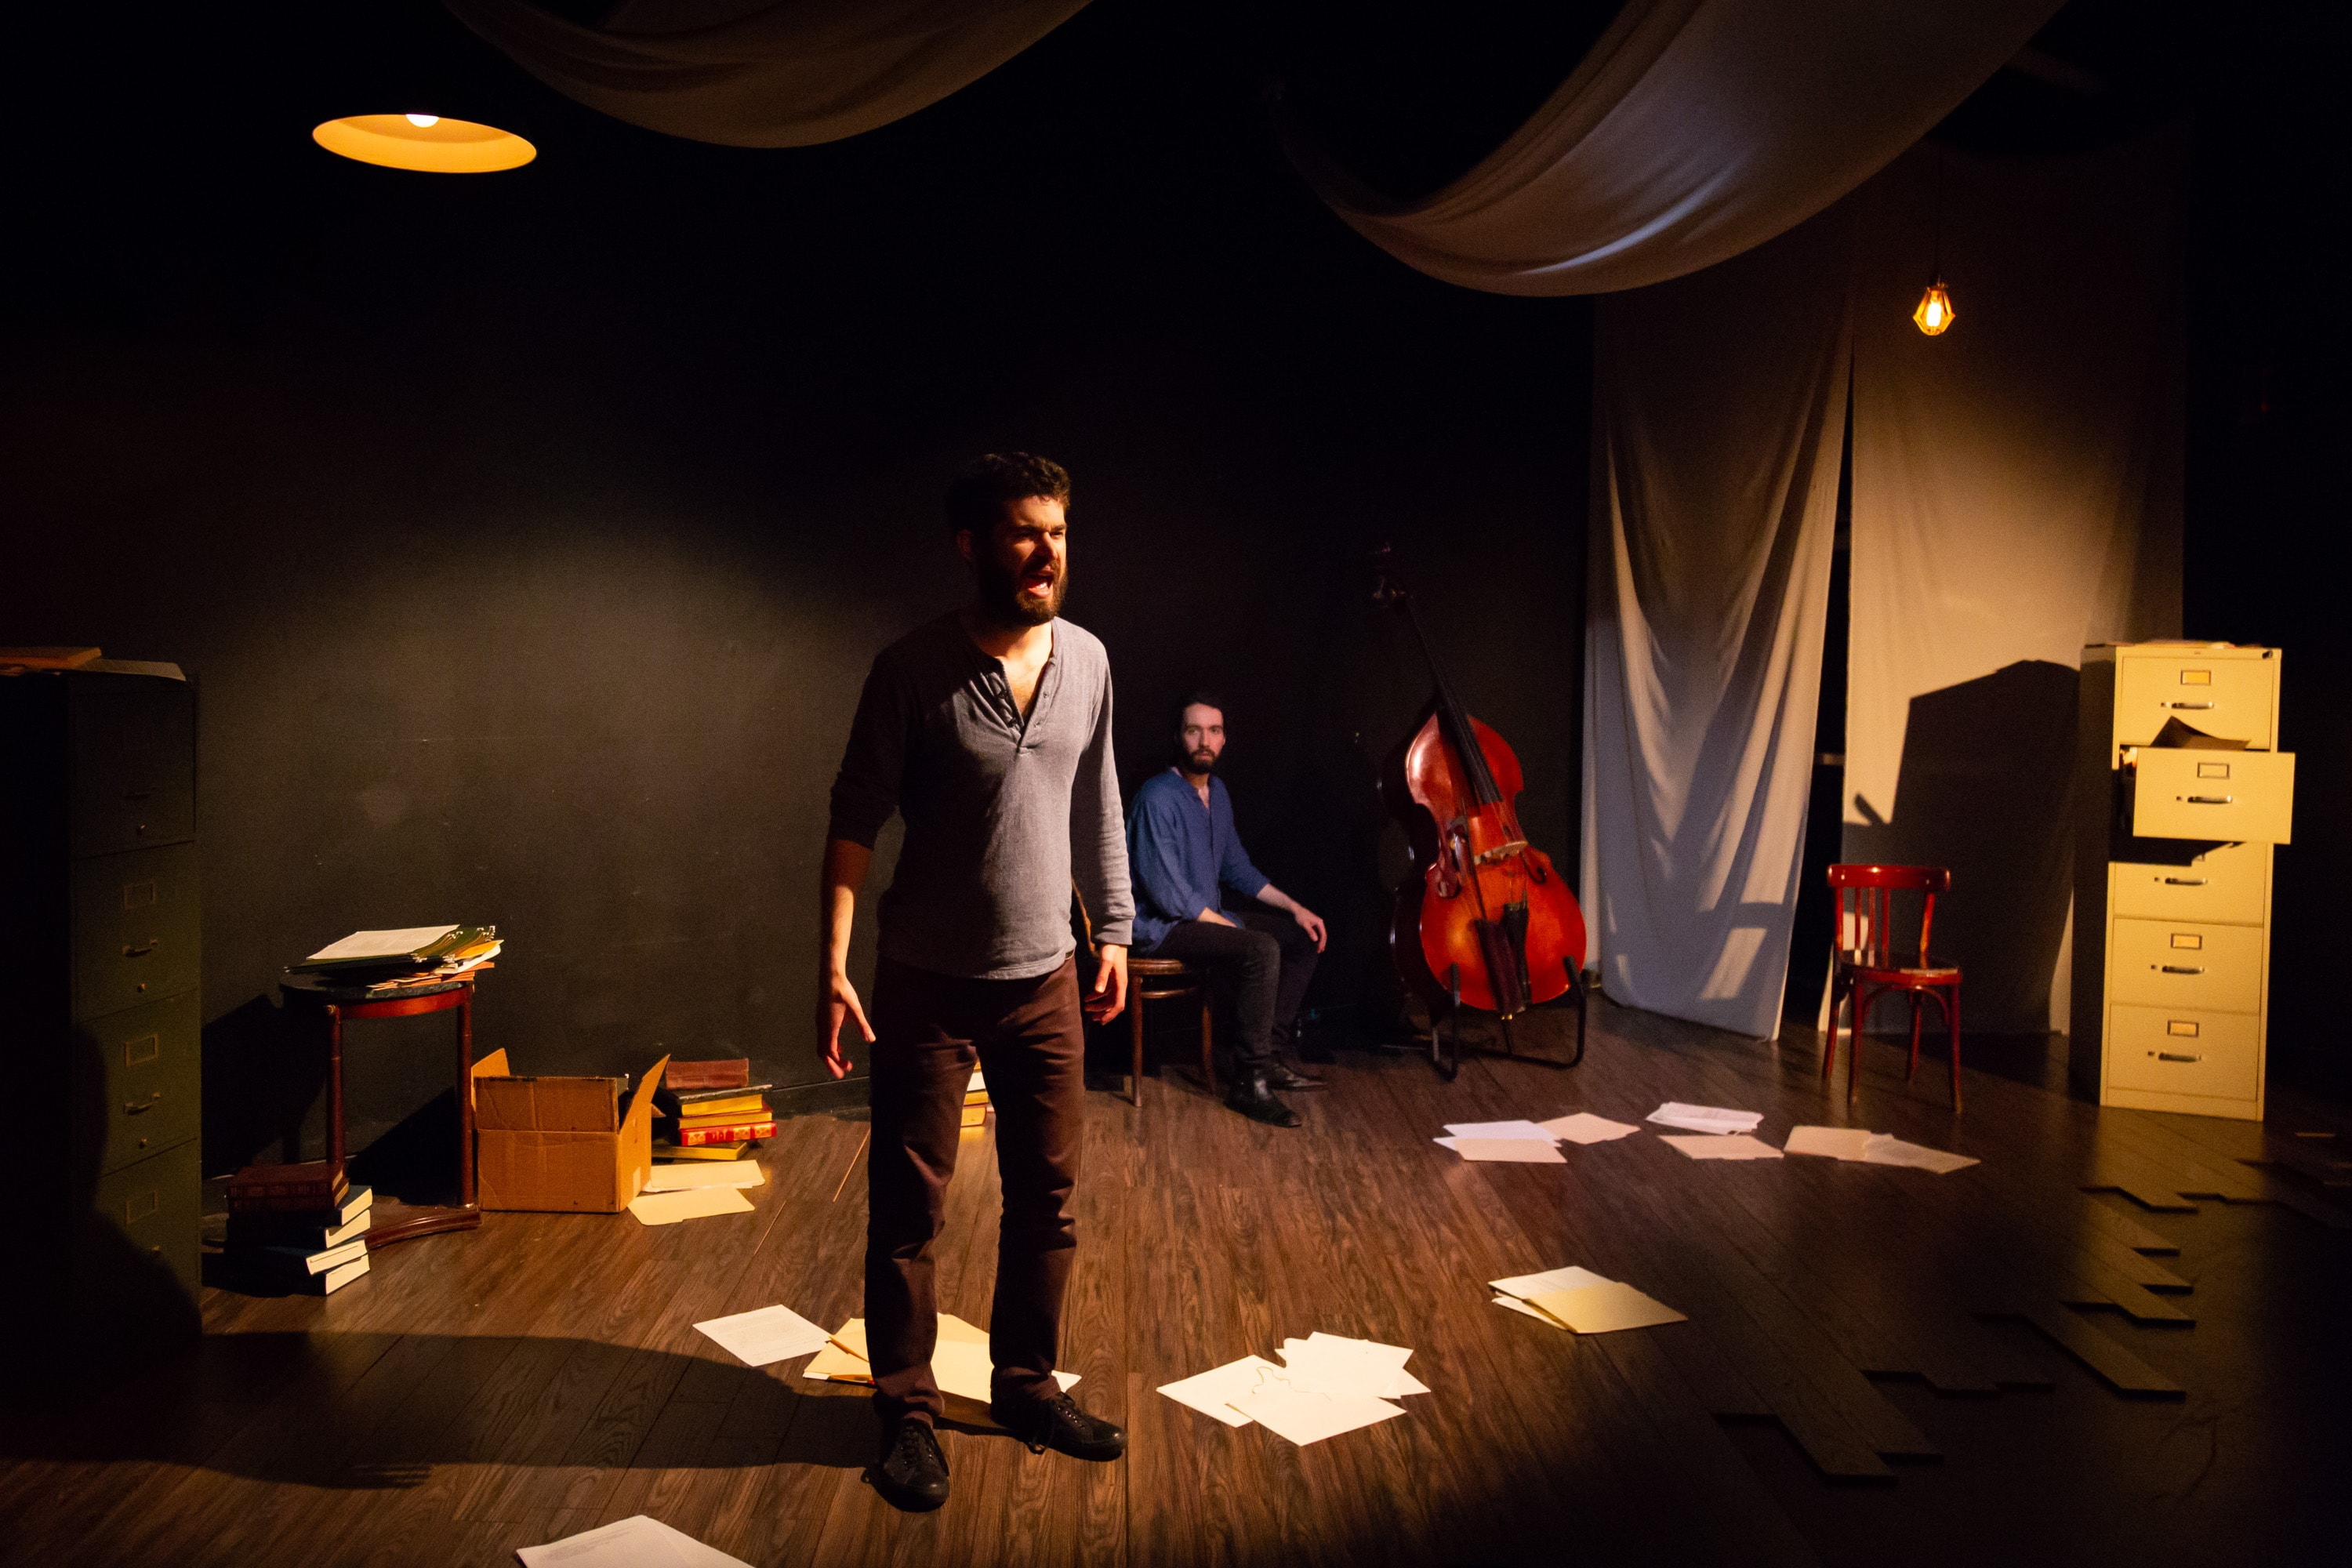 Iason Togias as the Poet and Matt Chilton as the Muse in An Iliad. Photo by Ryan Maxwell.